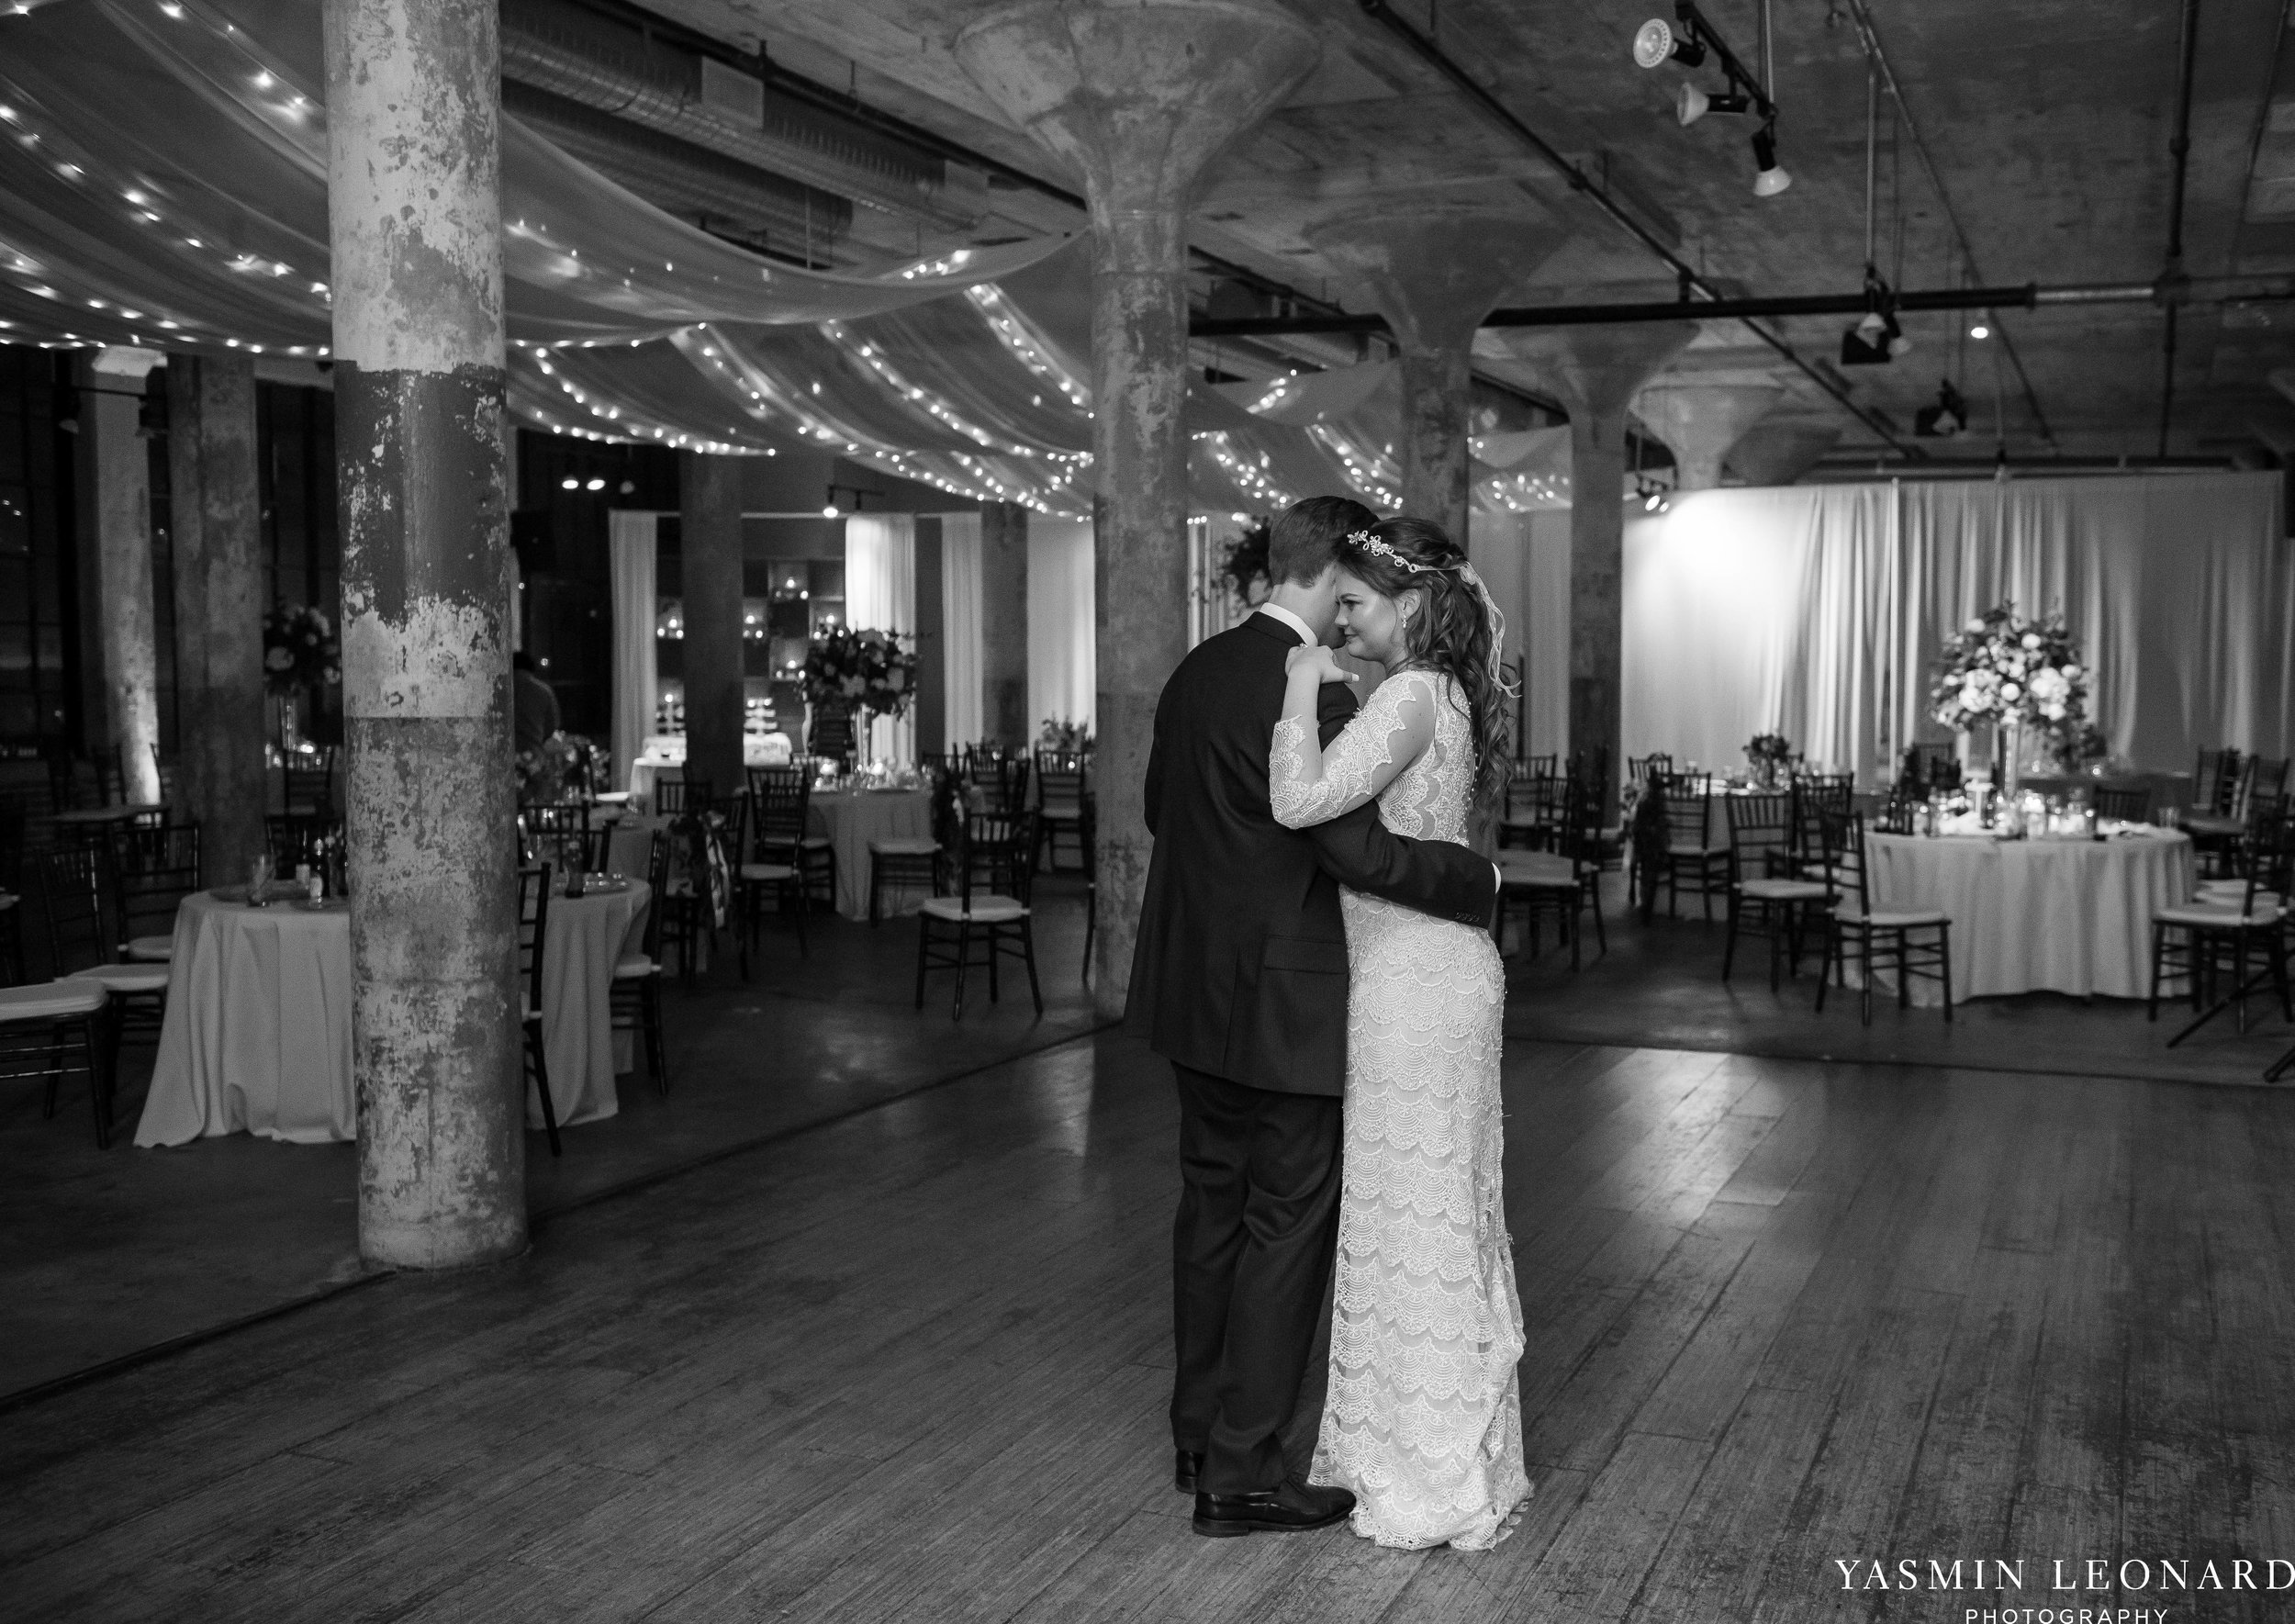 The Lofts at Union Square - Unions - High Point Weddings - NC Weddings - NC Wedding Photographer - Yasmin Leonard Photography - Just Priceless - Green Pink and Gold Wedding - Elegant Wedding-58.jpg